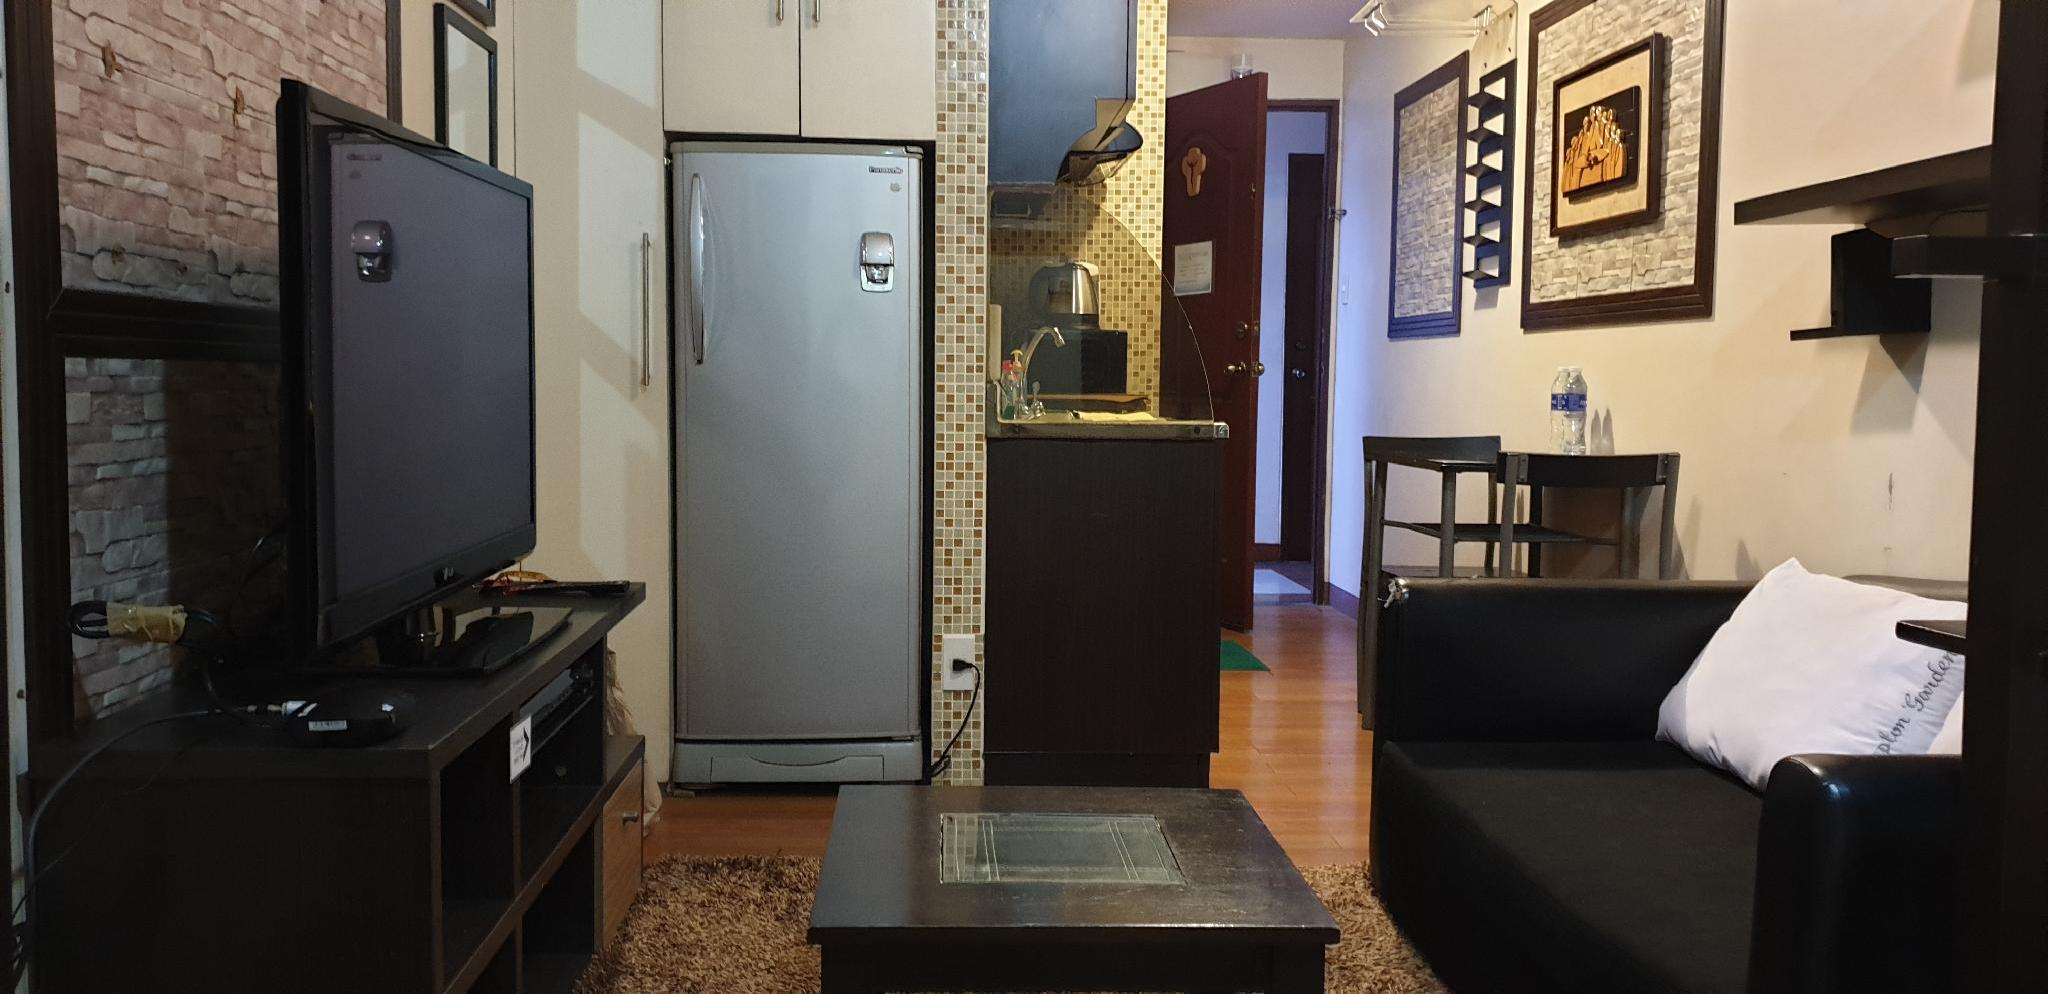 Fully Furnished Unit w/ High Speed WiFi & Cable TV